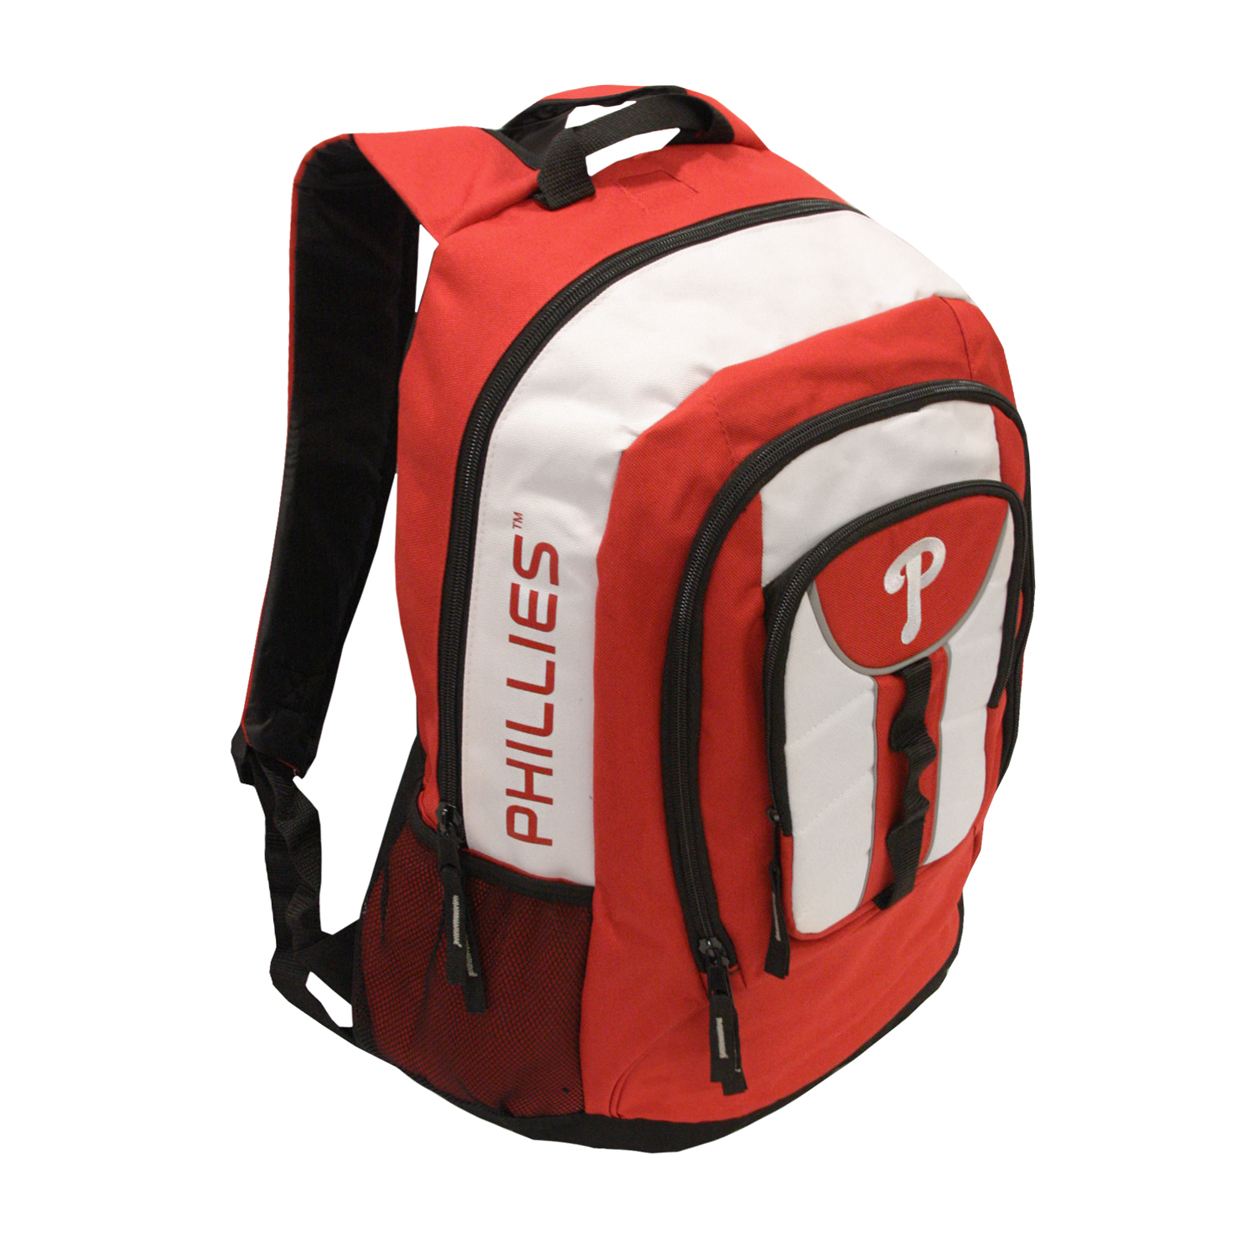 Colossus Backpack MLB Red - Philadelphia Phillies